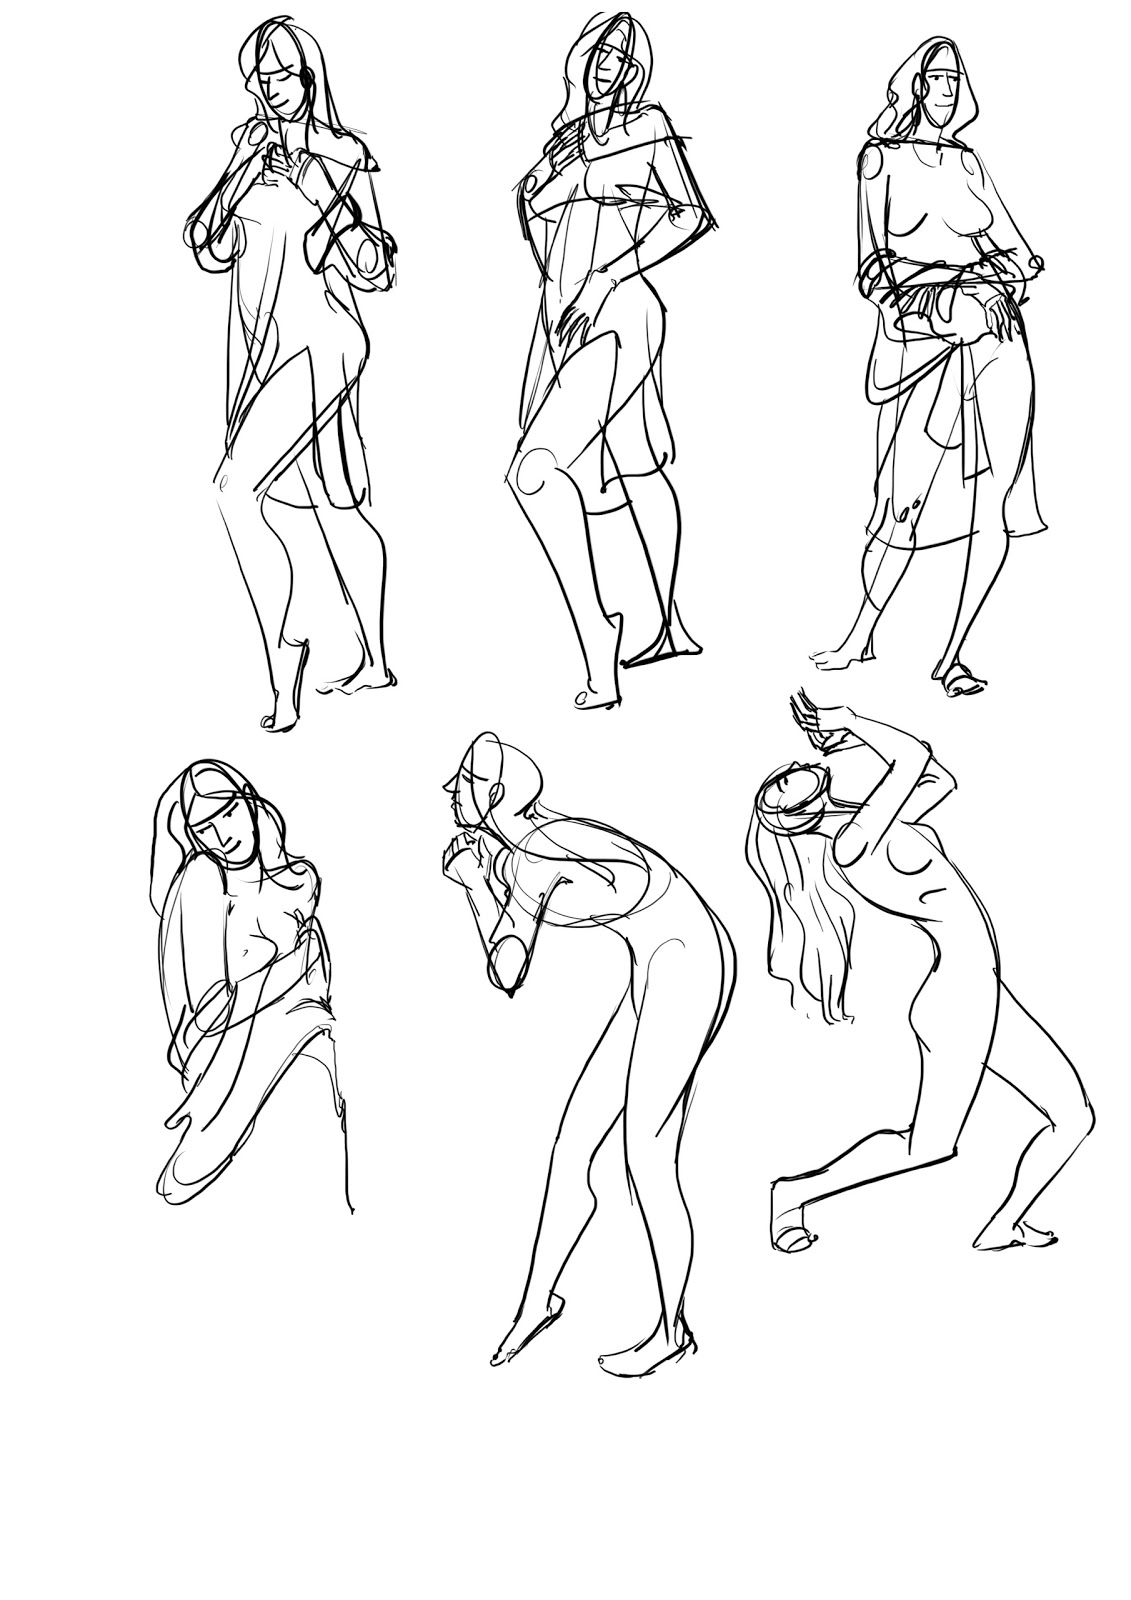 Saiprasad  Some Gesture Drawing